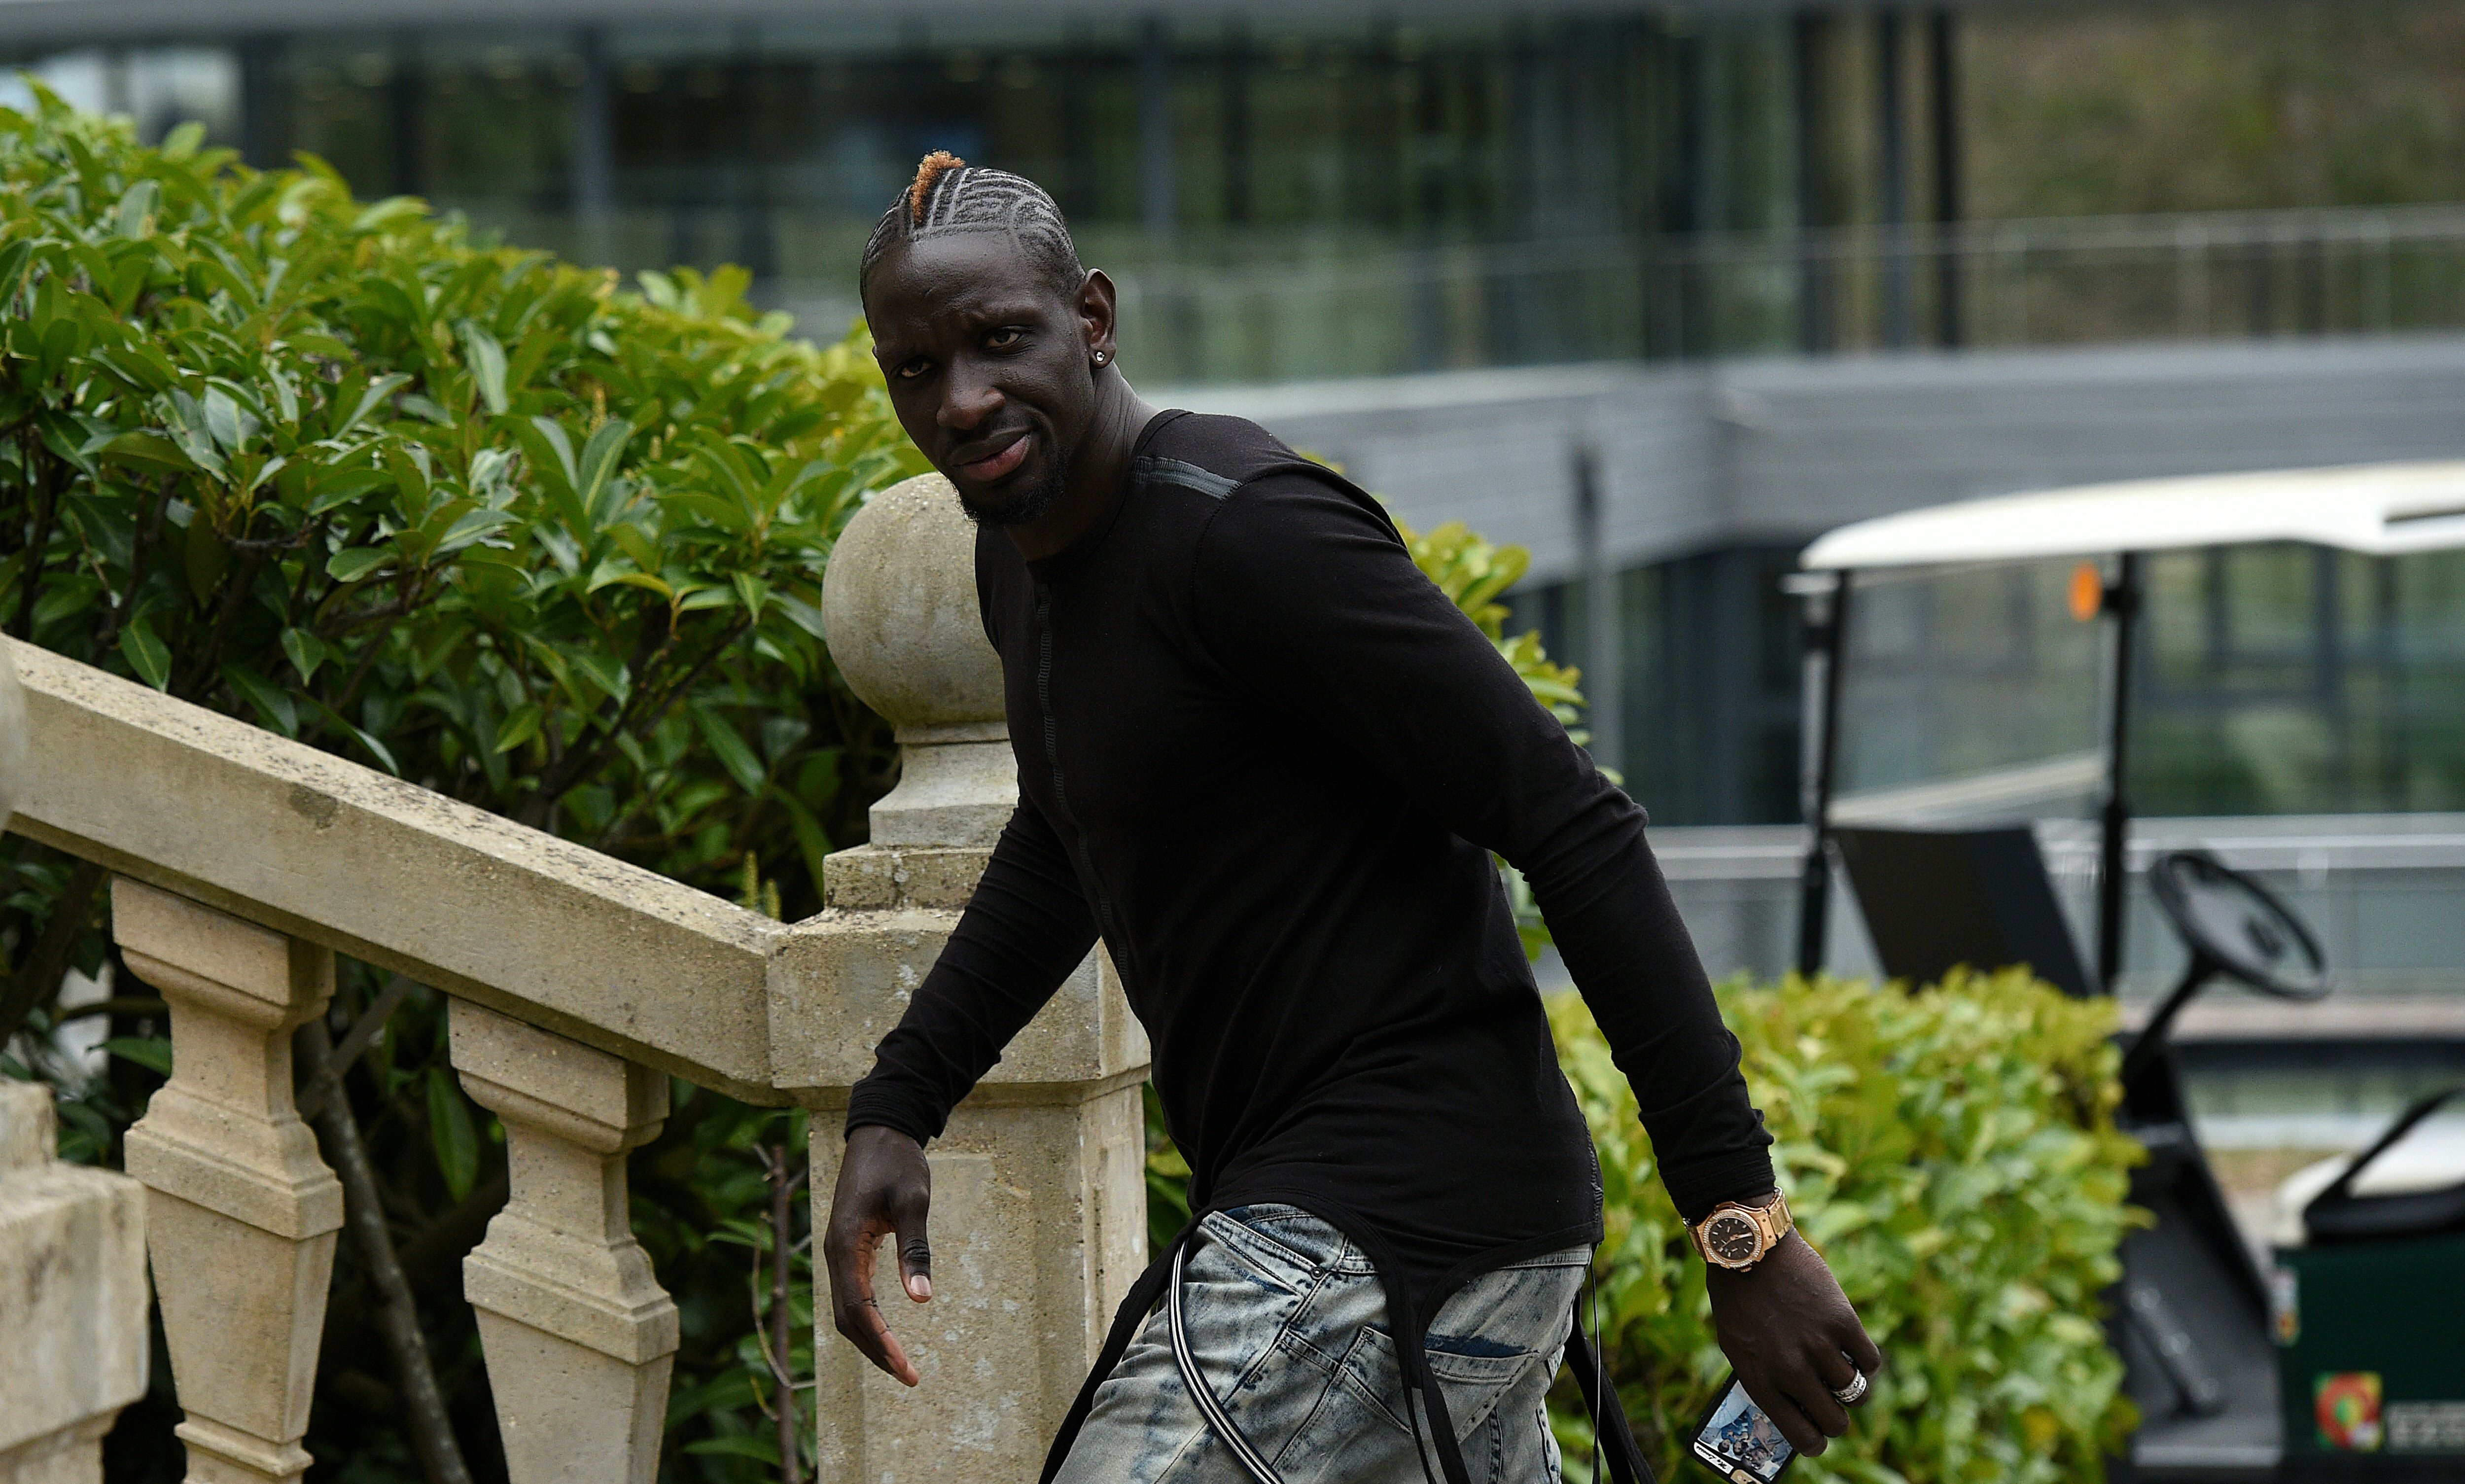 France's defender Mamadou Sakho arrives at the French national football team training base in Clairefontaine on March 21, 2016 on the first day of their training ahead of the friendly football match against The Netherlands to be held on March 25. (Photo by Franck Fife/AFP/Getty Images)